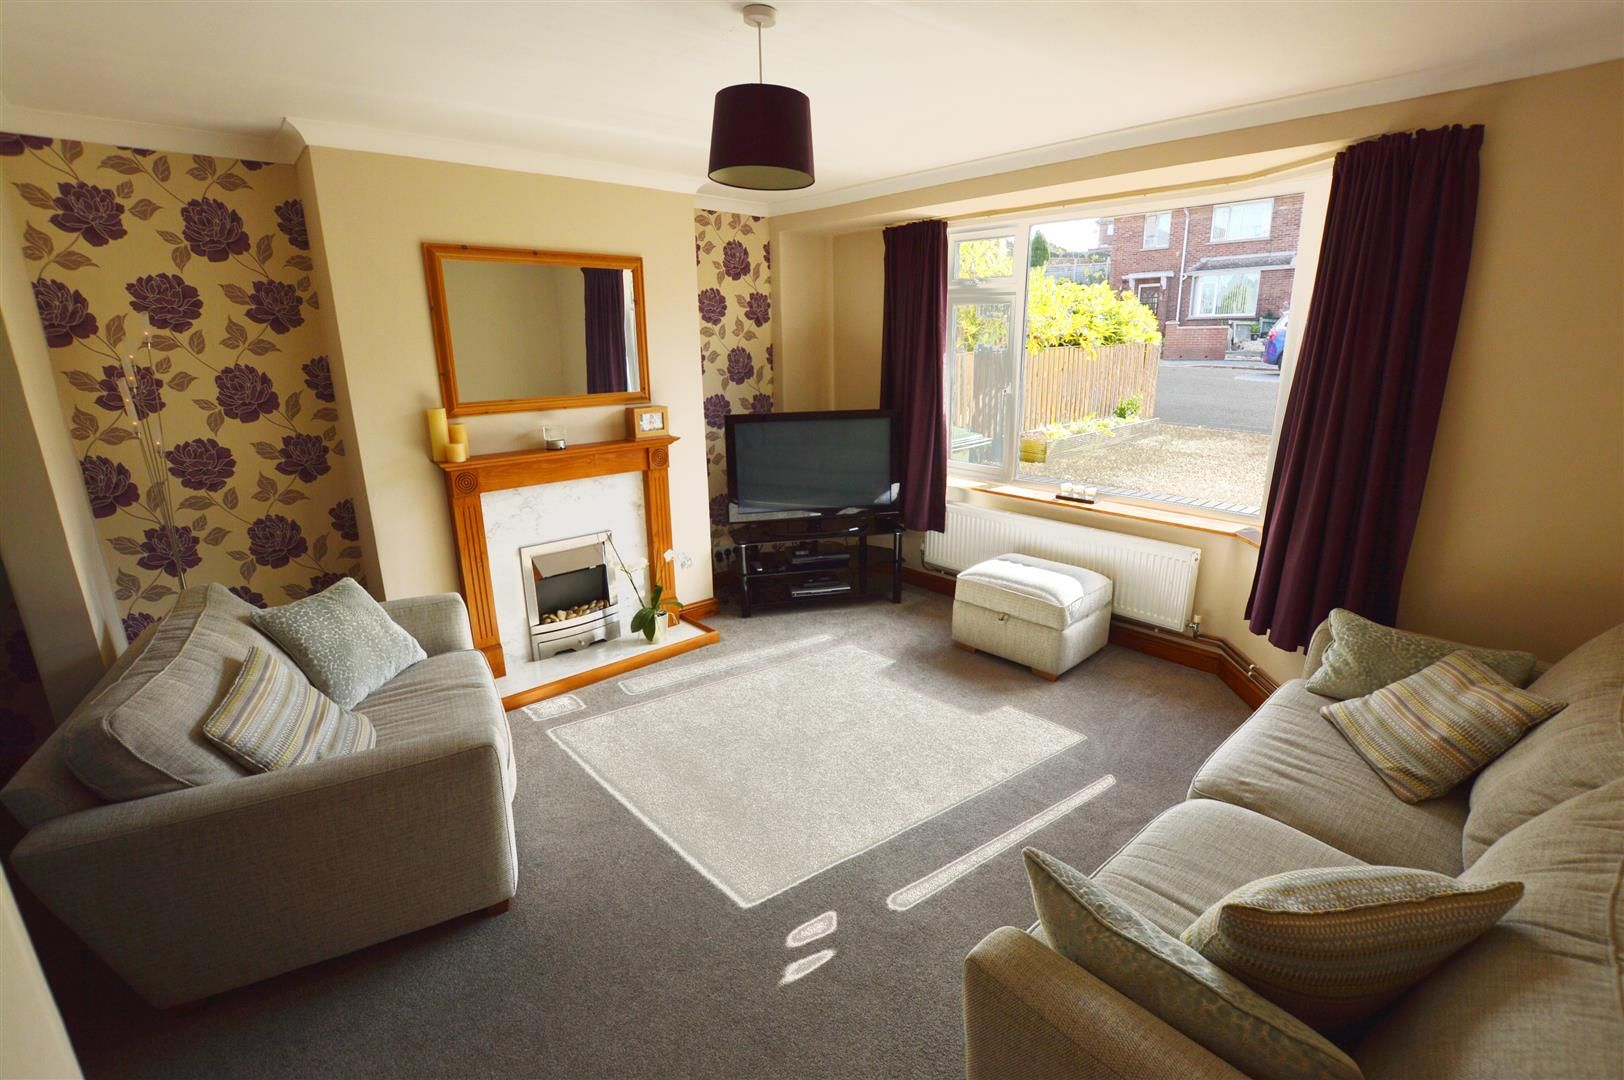 4 bed semi-detached for sale in Hereford  - Property Image 2